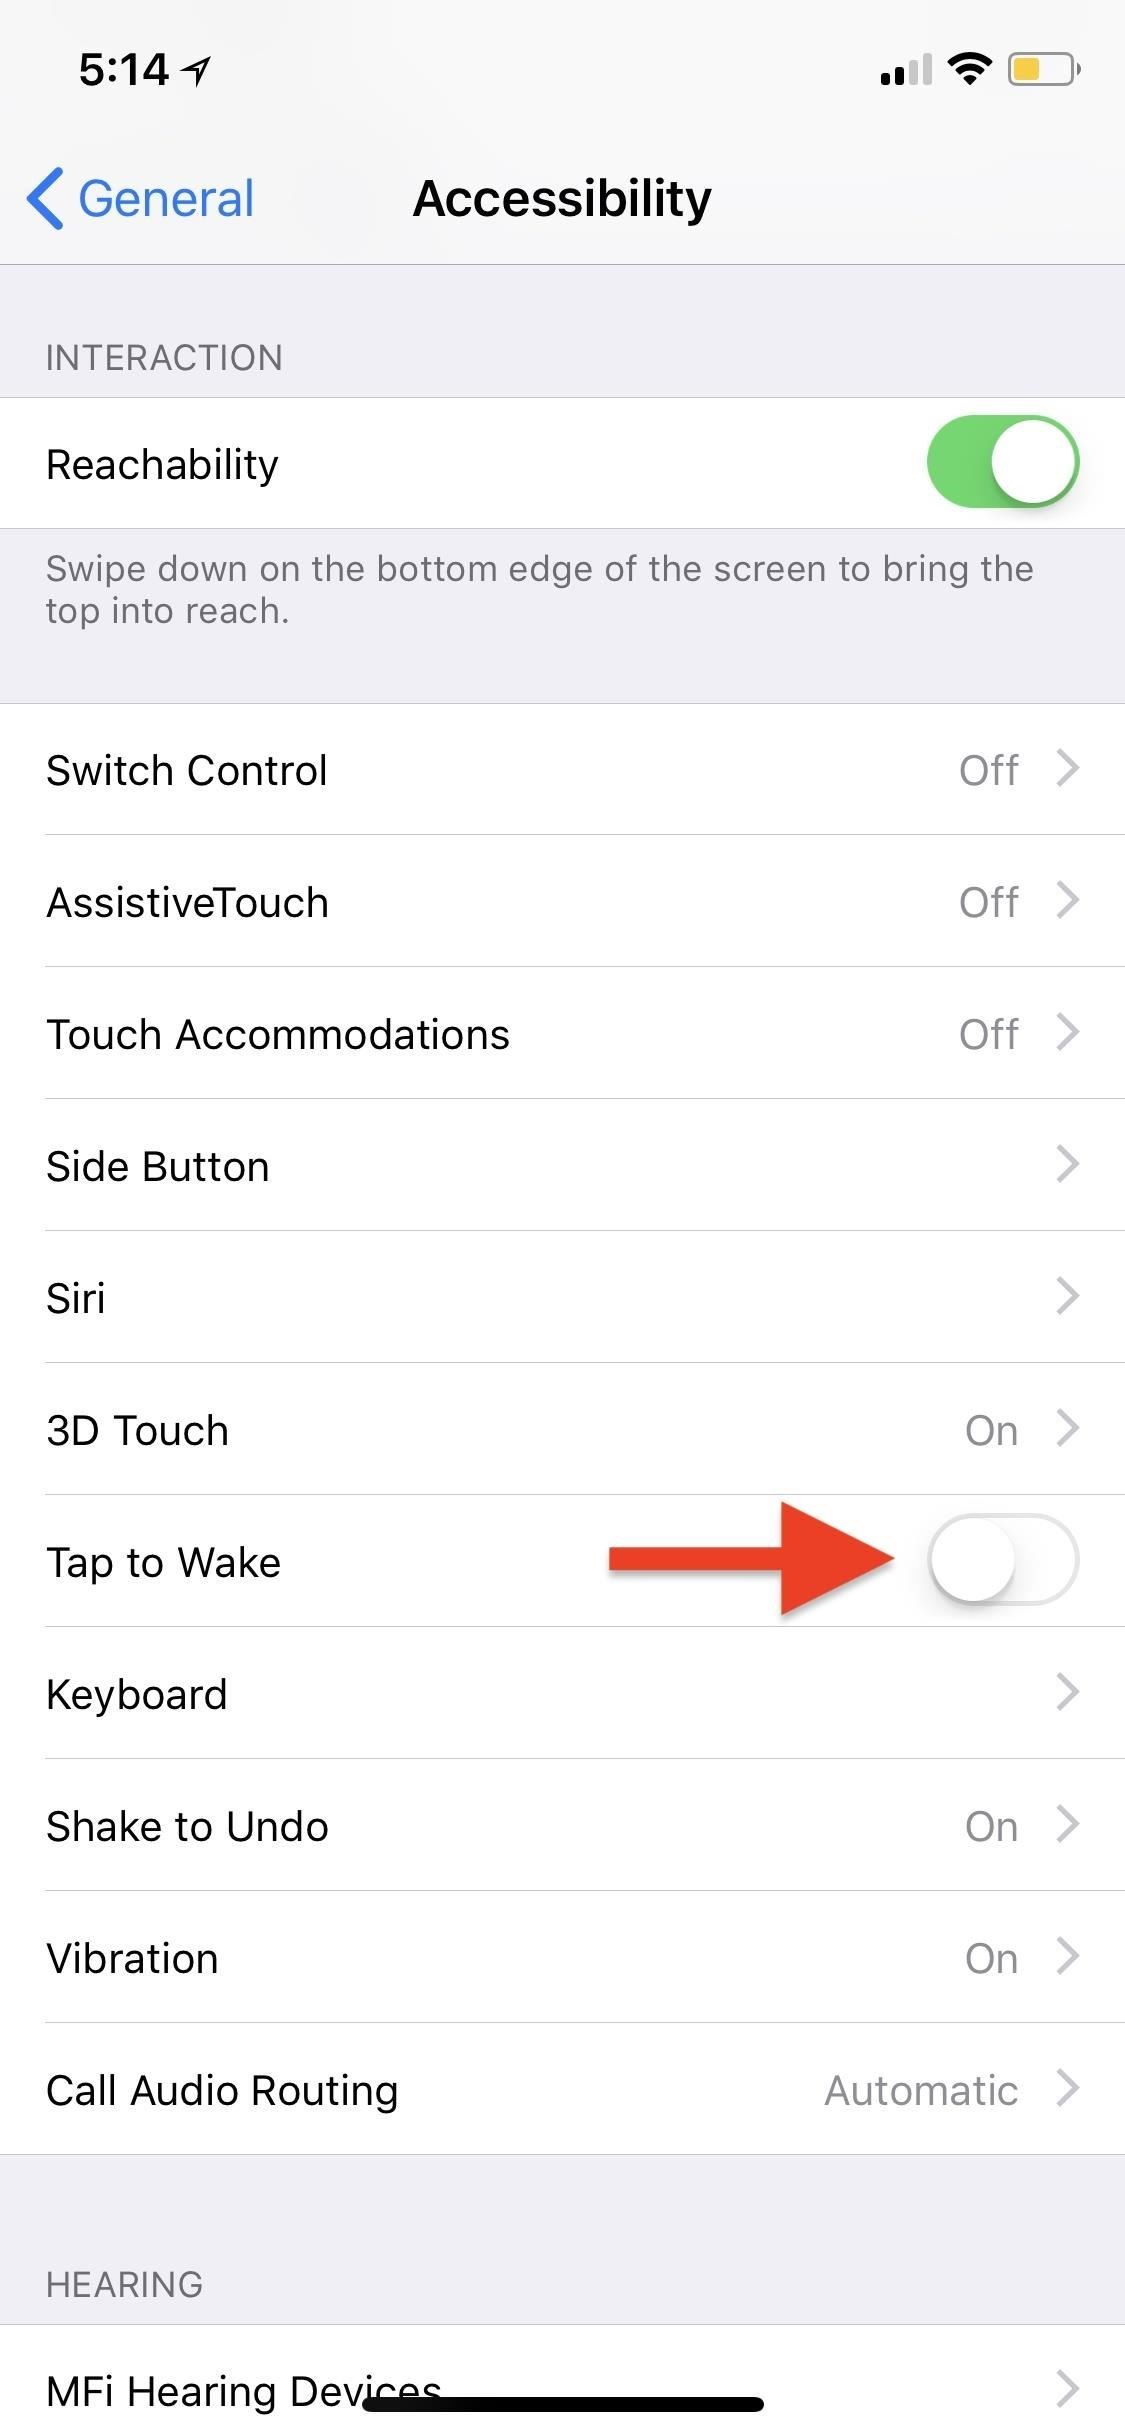 How to Keep Your iPhone's Screen from Randomly Turning On